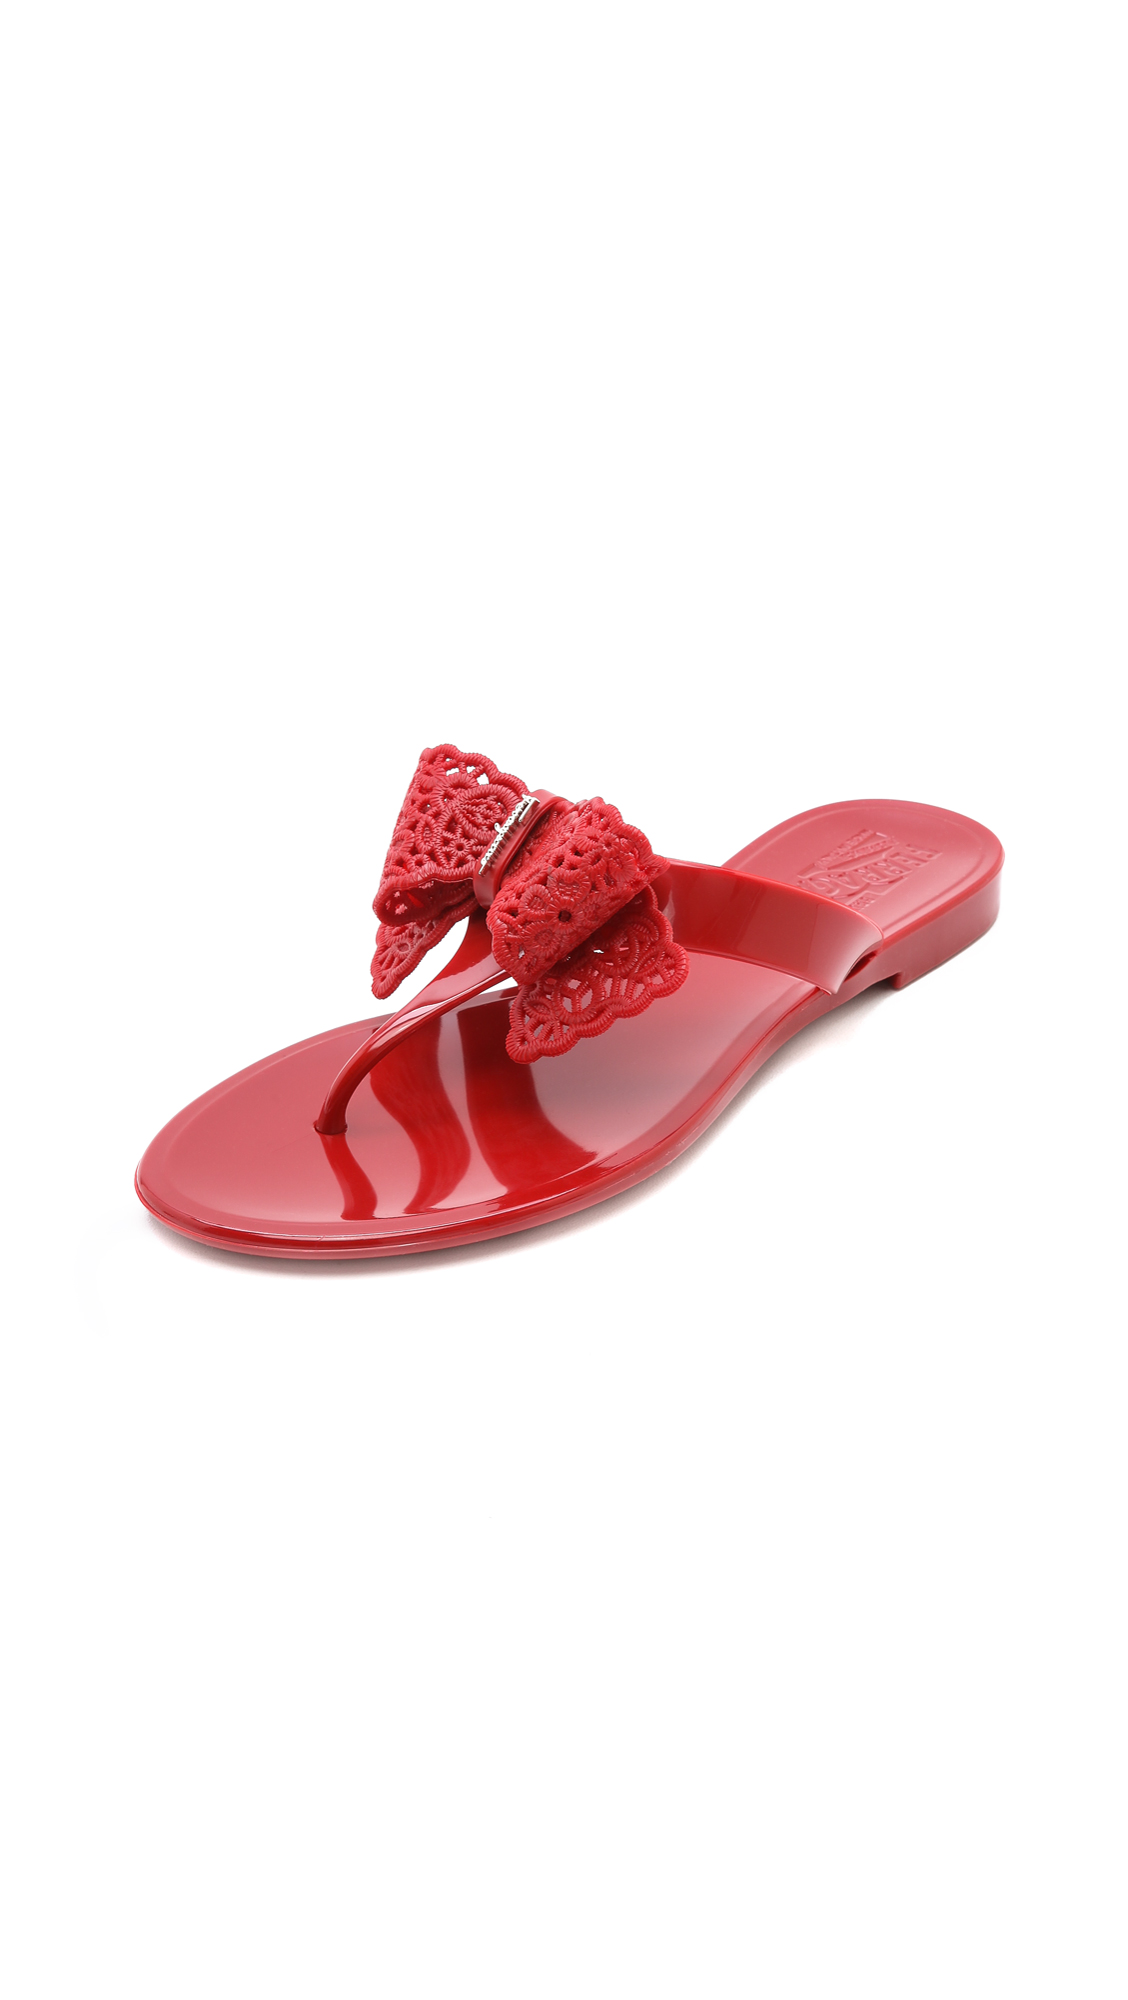 Lyst Ferragamo Pandy Jelly Thong Sandals Rosso In Red